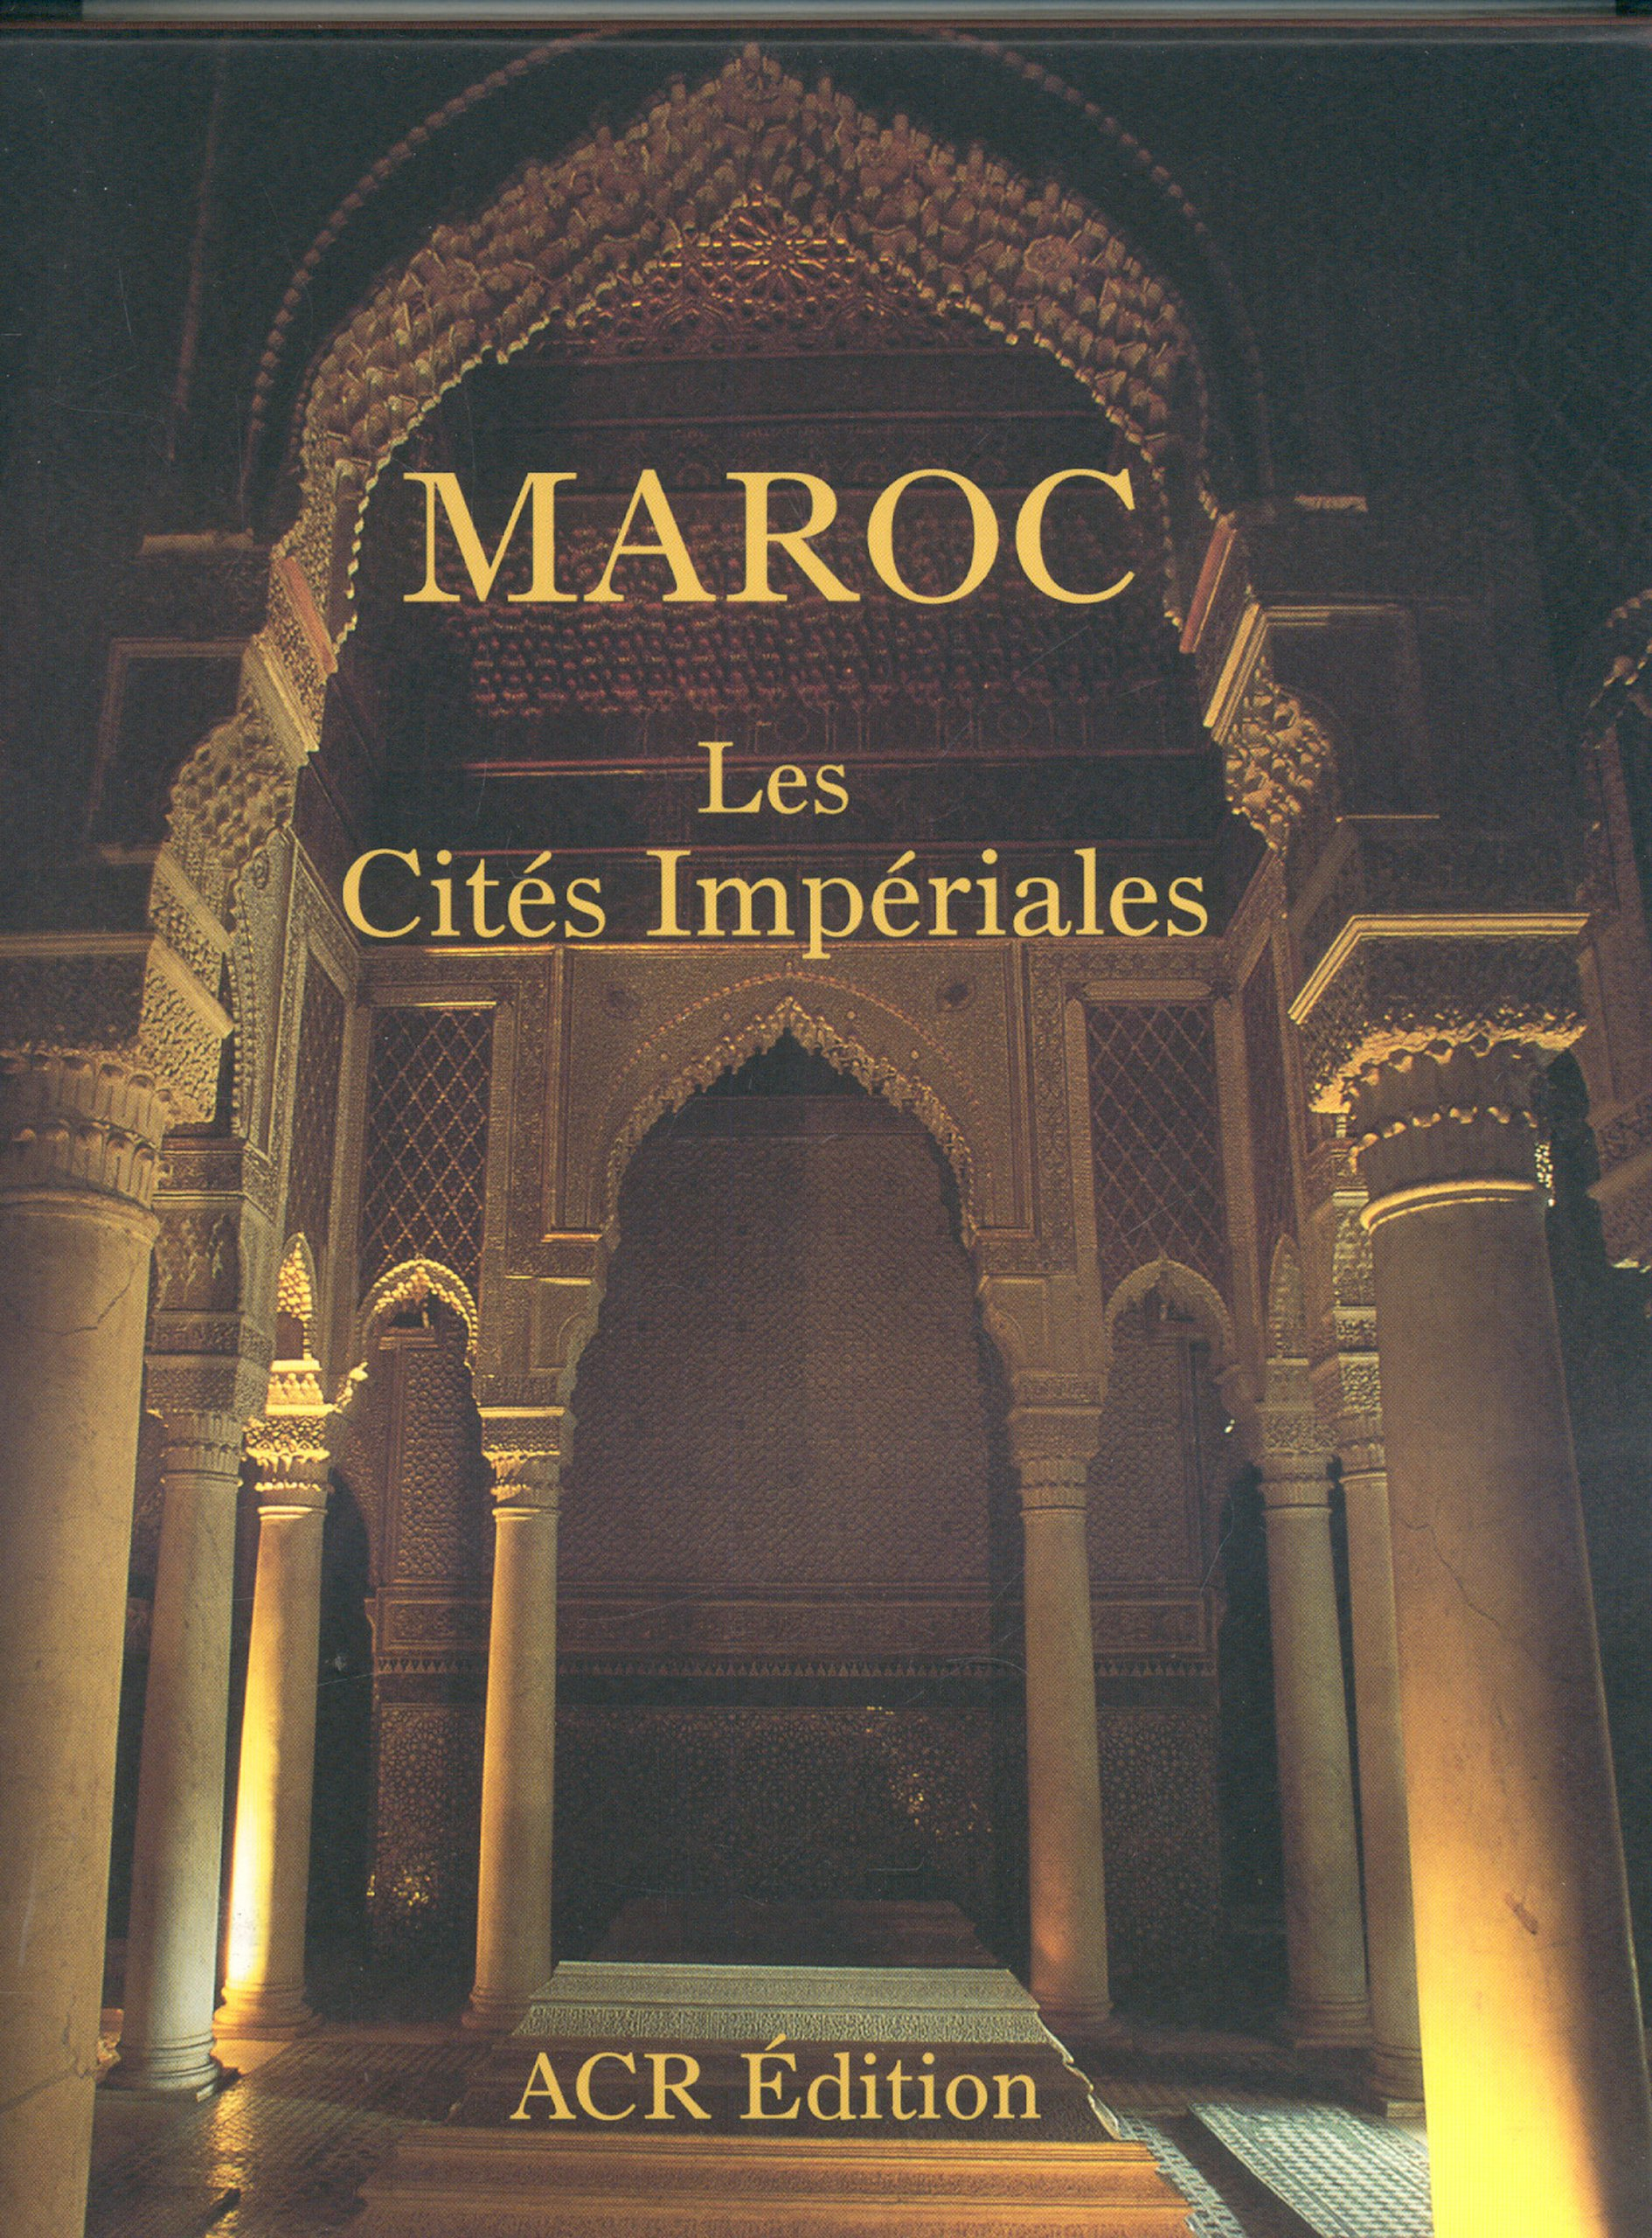 Maroc. Les cites imperiales by Art Creation Realisation